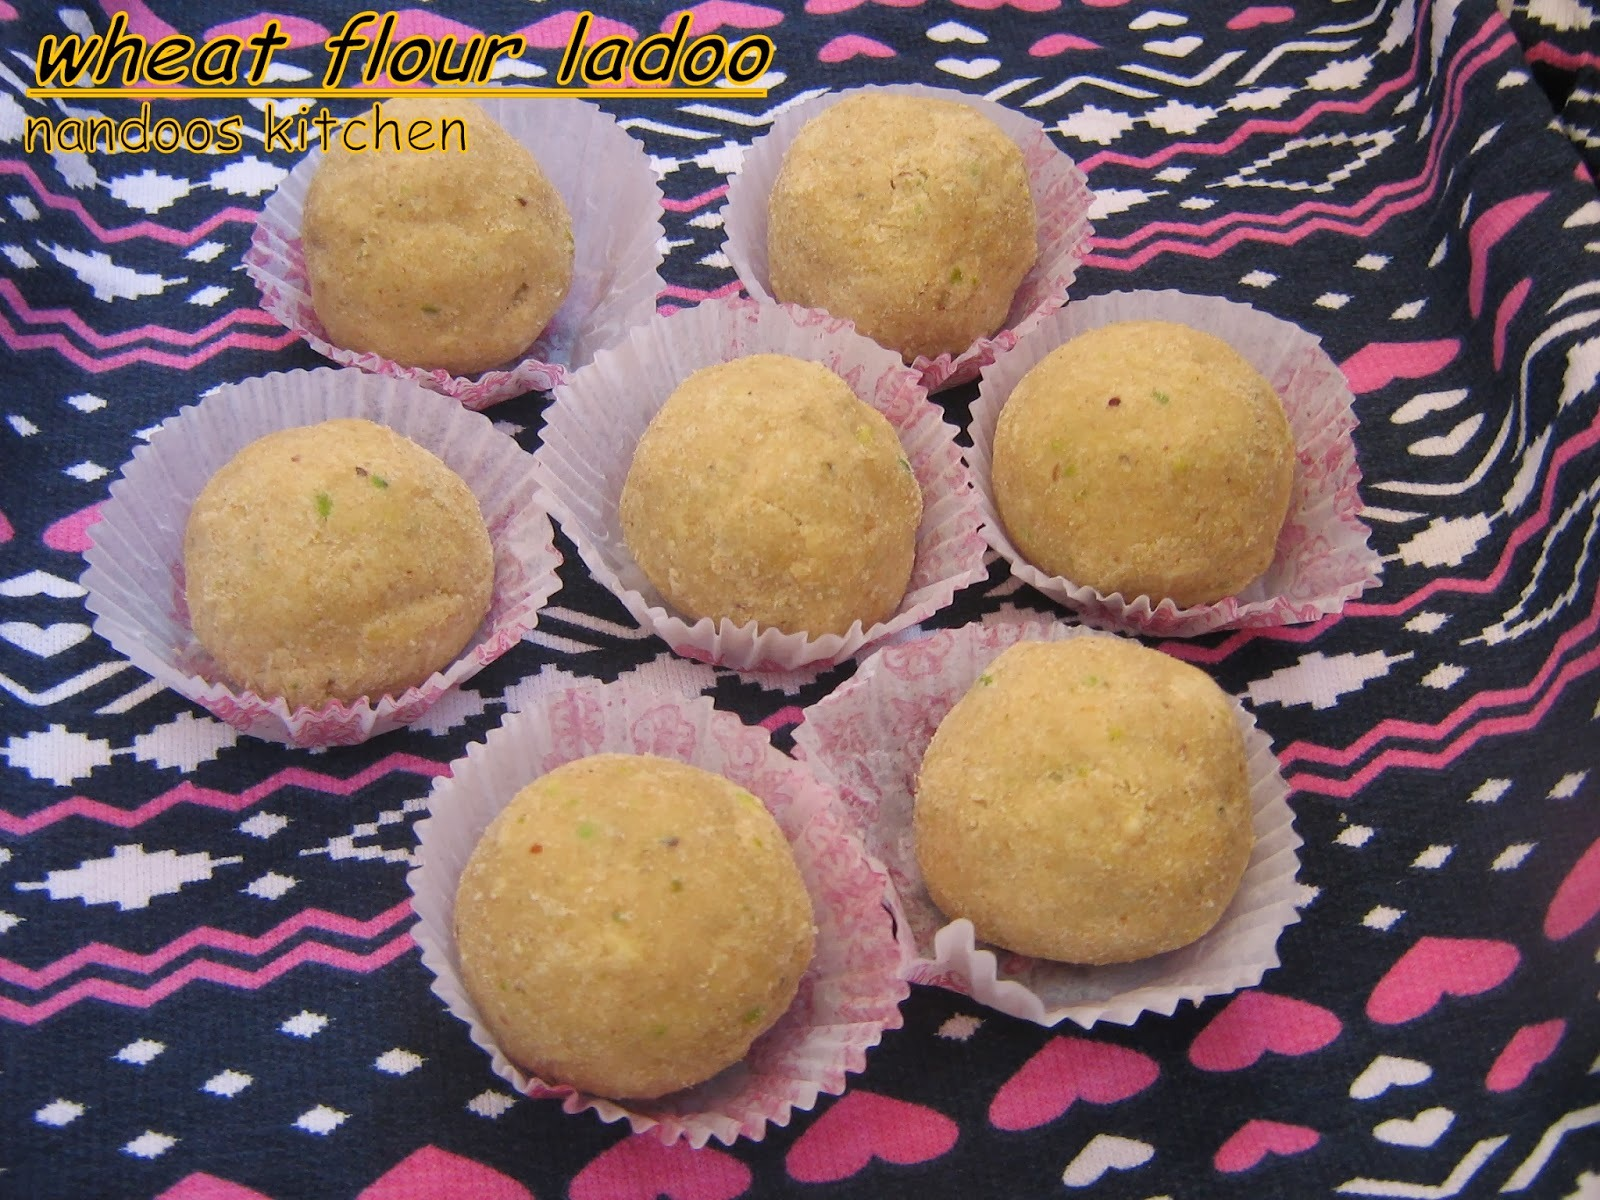 Atta ladoo / Easy wheat flour ladoo / gothambu ladoo / ladoo recipes